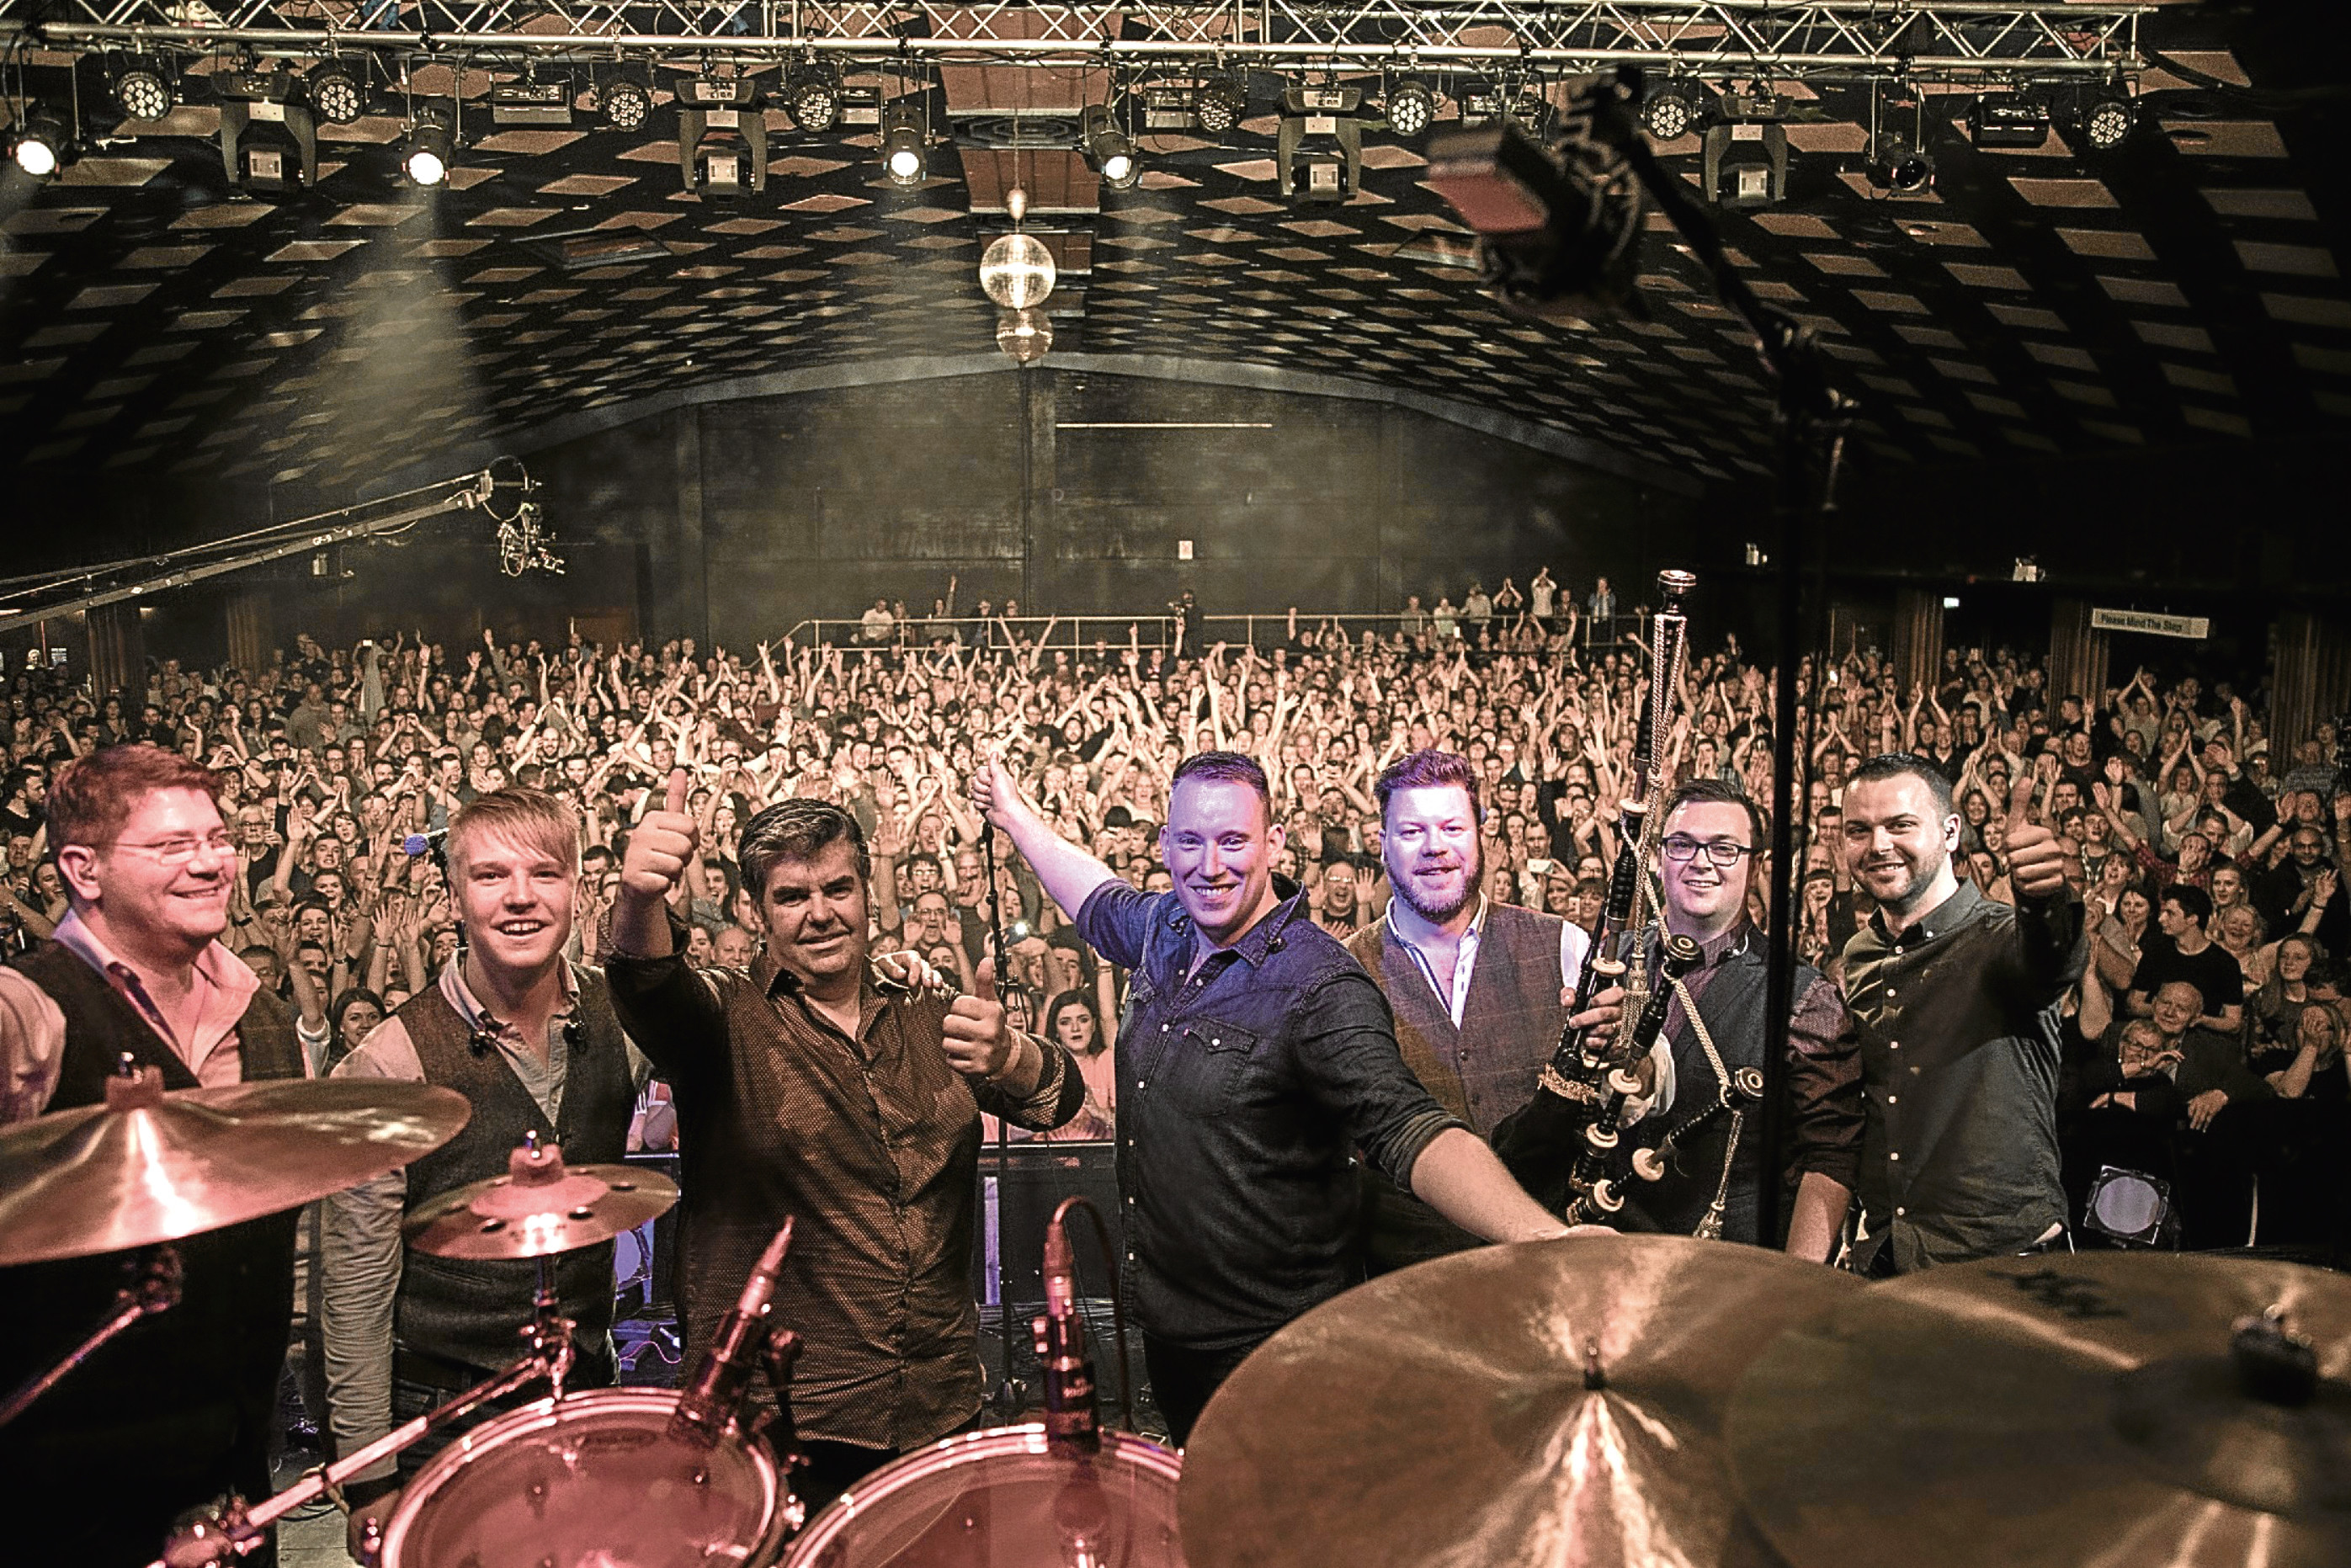 Skipinnish have headlined some of the UK's biggest music festivals.